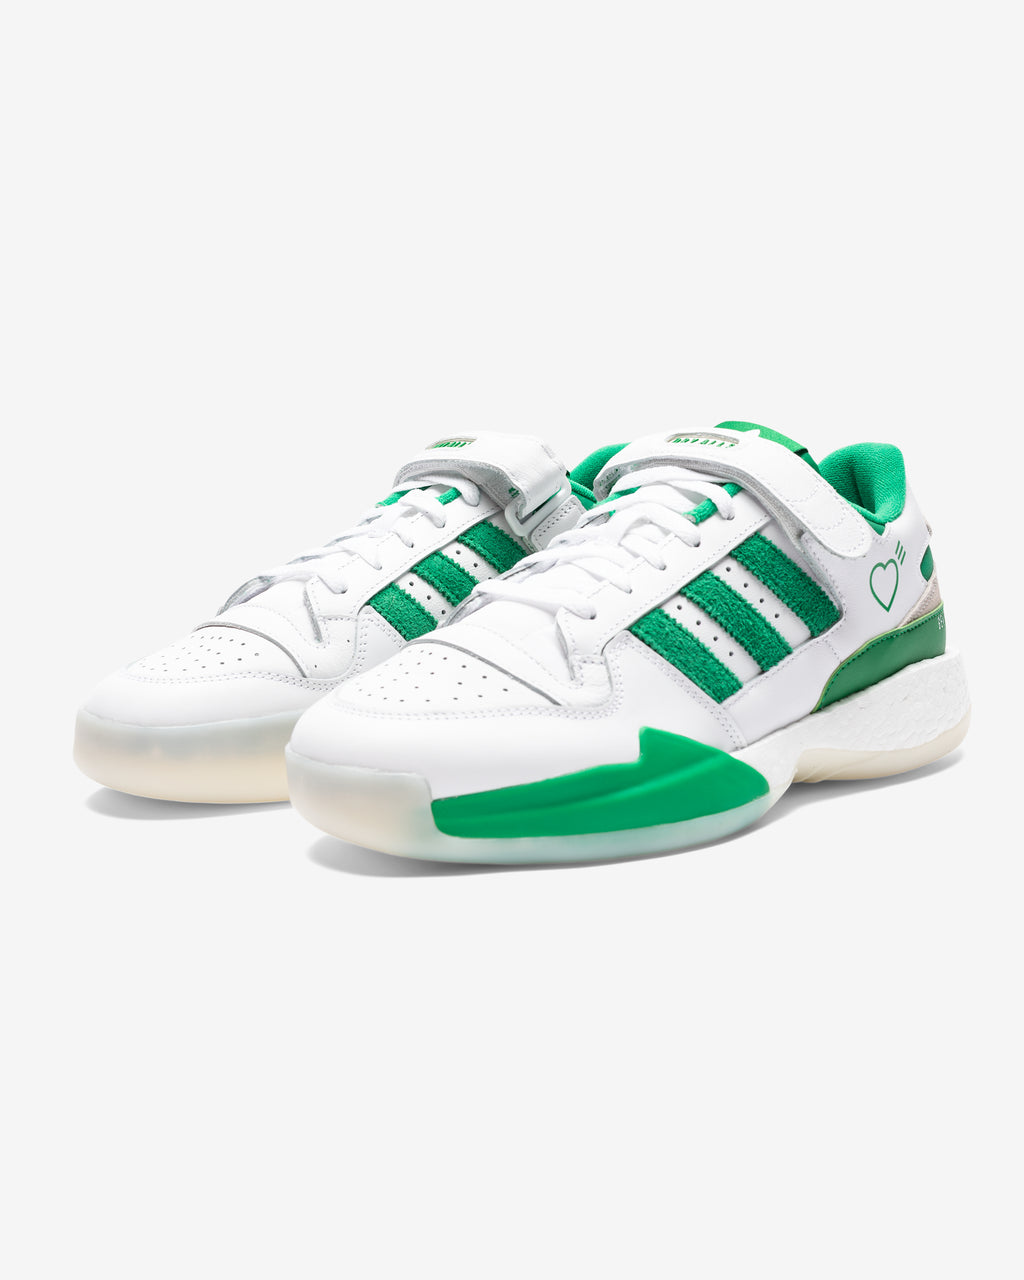 ADIDAS X HUMAN MADE FORUM LOW - GREEN